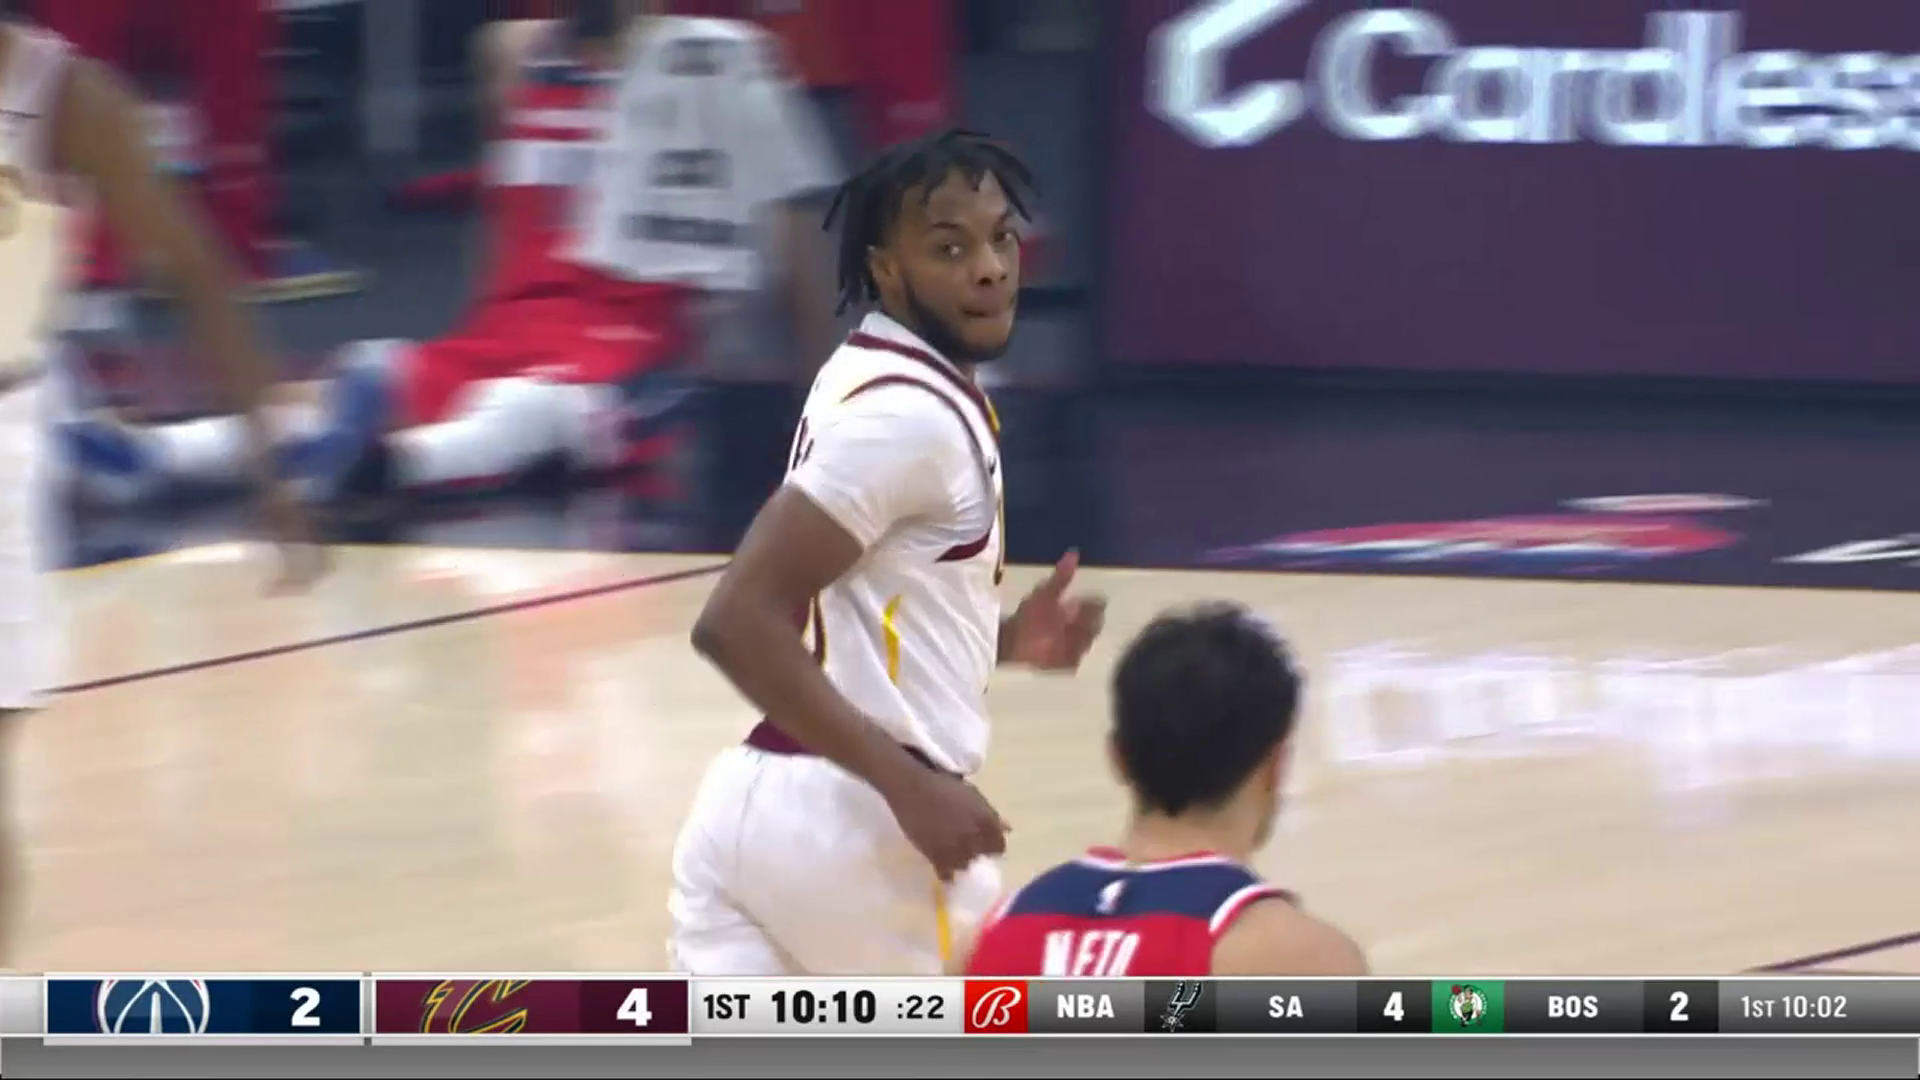 Garland Drives Baseline and Scores